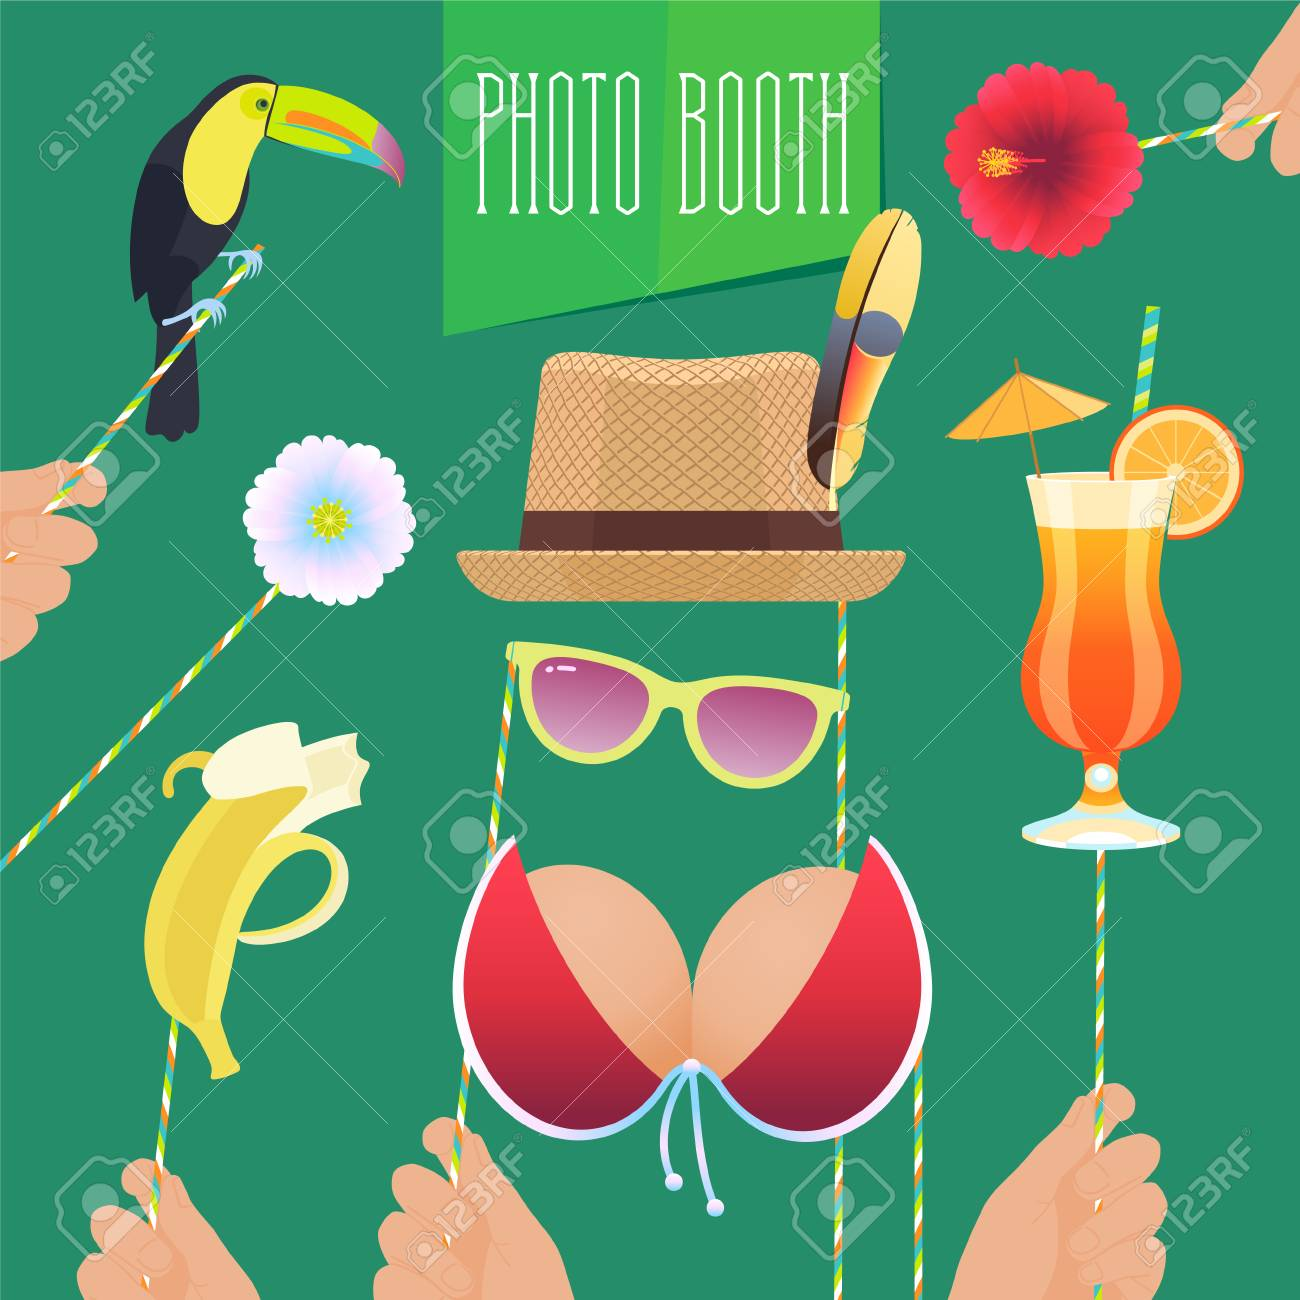 picture about Printable Photo Props titled Picture booth printable props assortment for tropical social gathering vector..